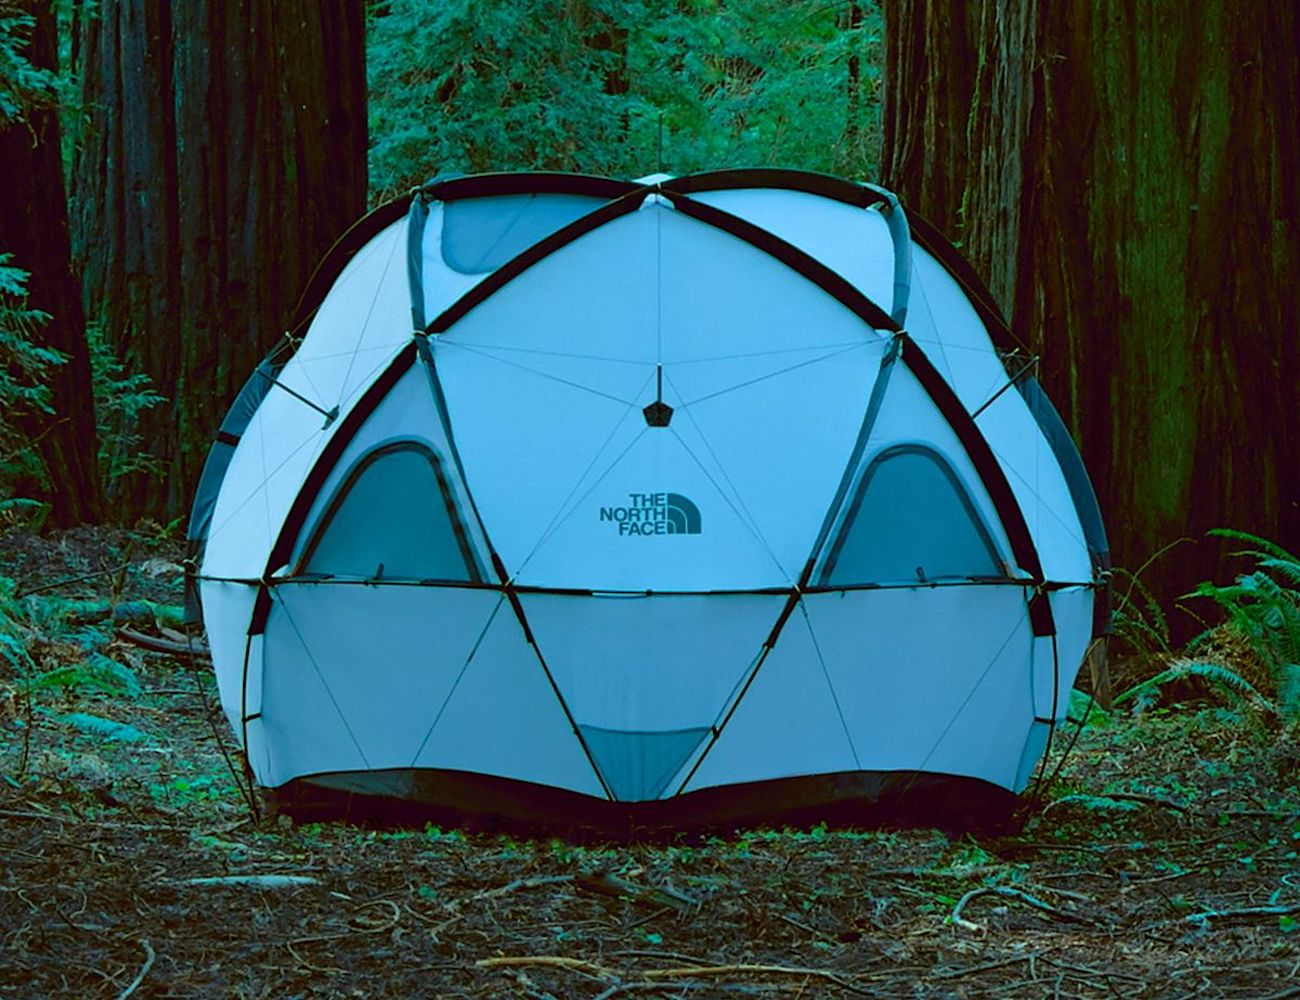 North Face Geodome 4 Circular Tent is a modern take on camping